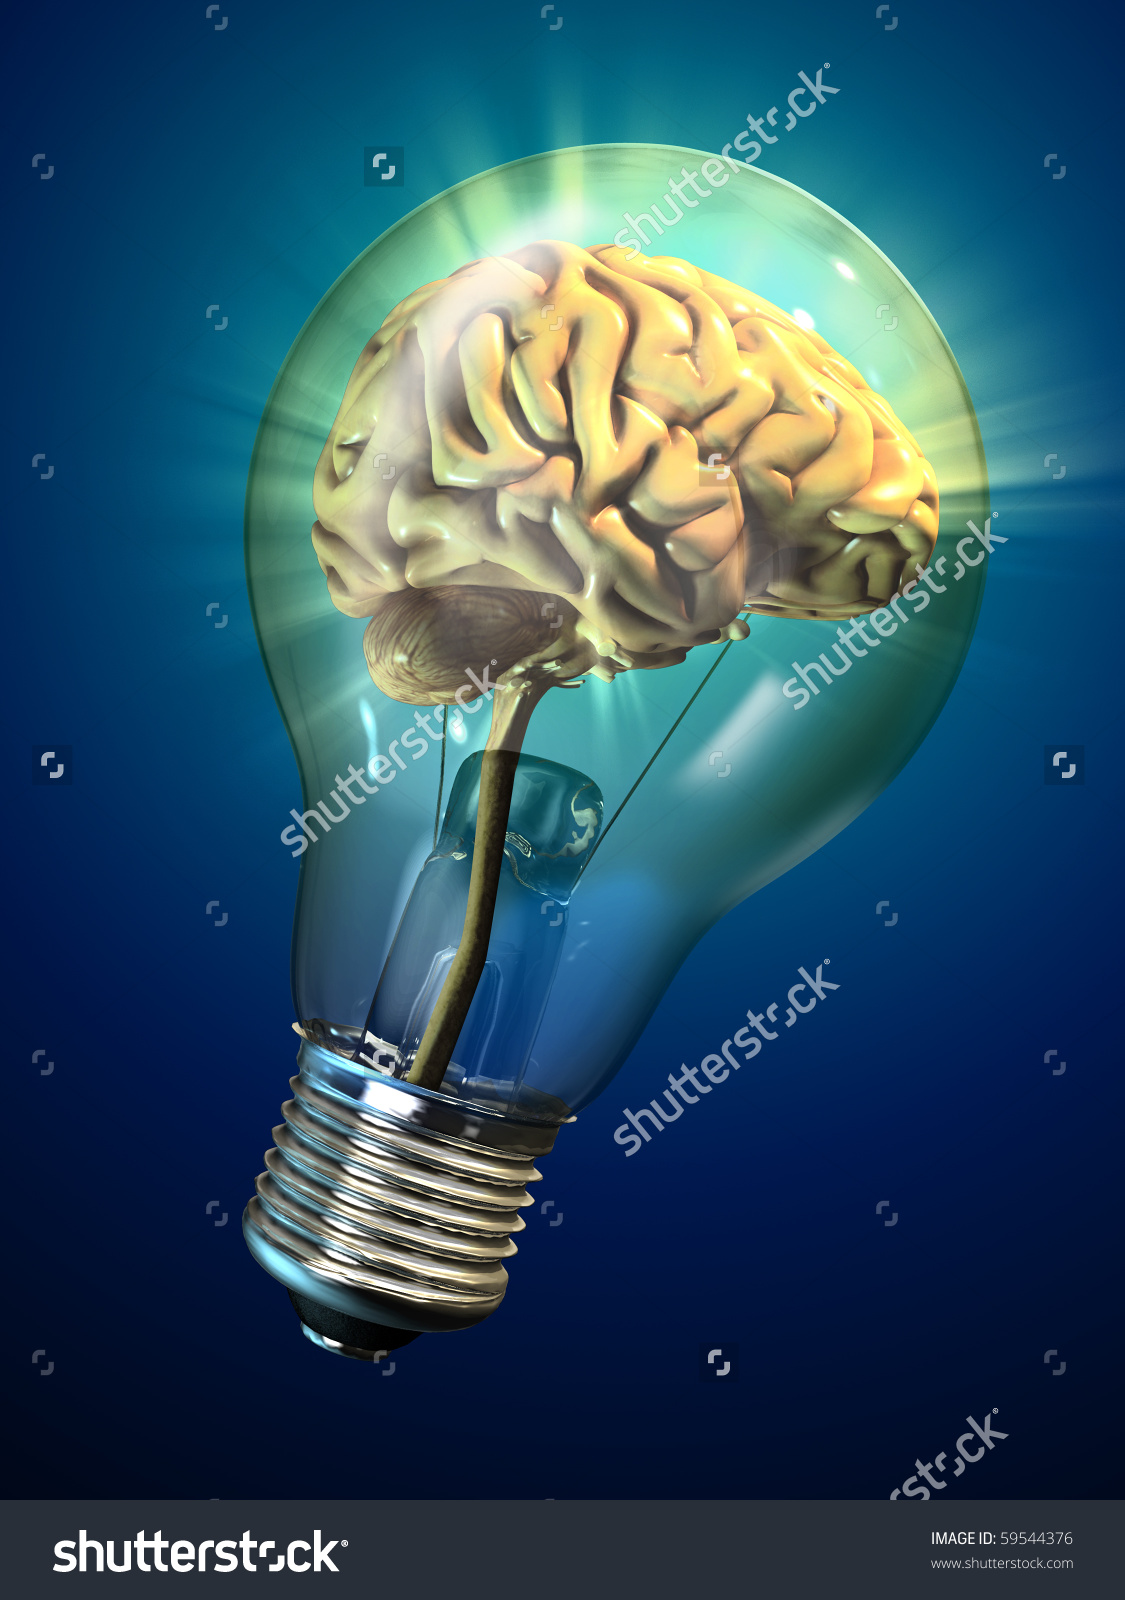 Human Brain Inside Glowing Electrical Bulb Stock Illustration.